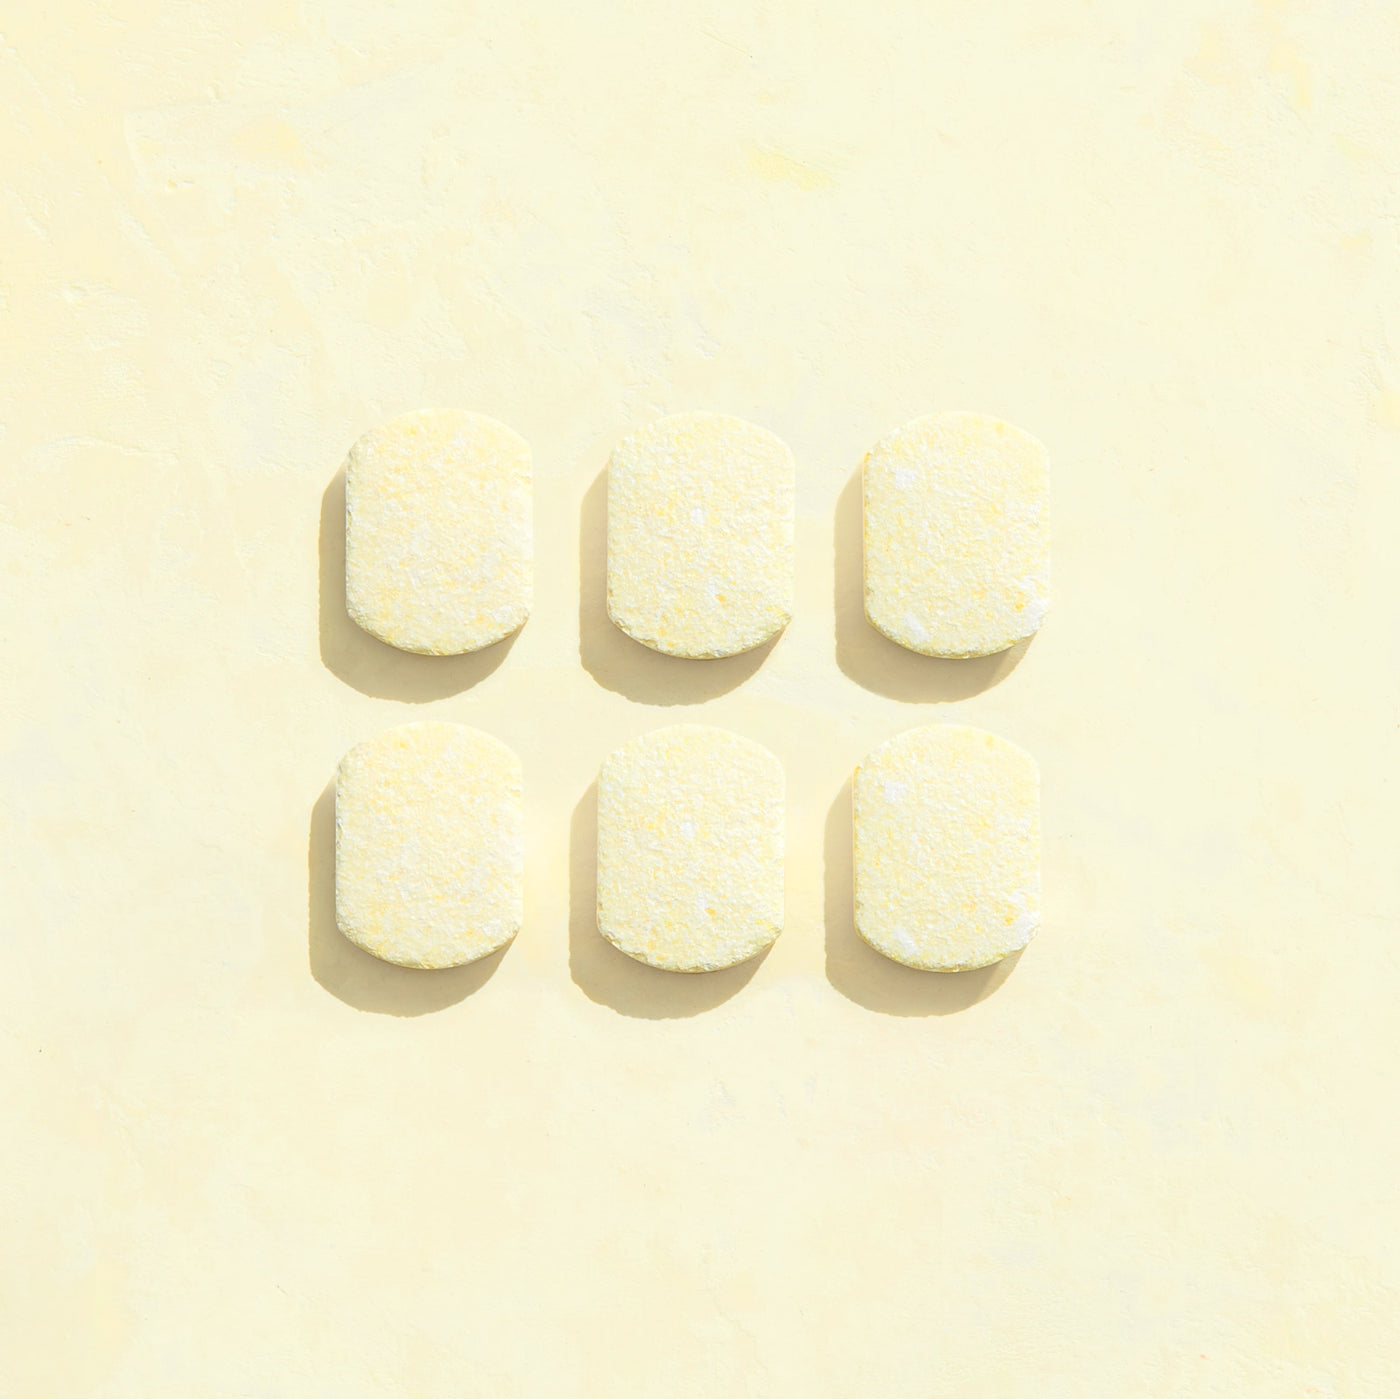 Six unwrapped lemon scented Multi-Surface Cleaner tablets